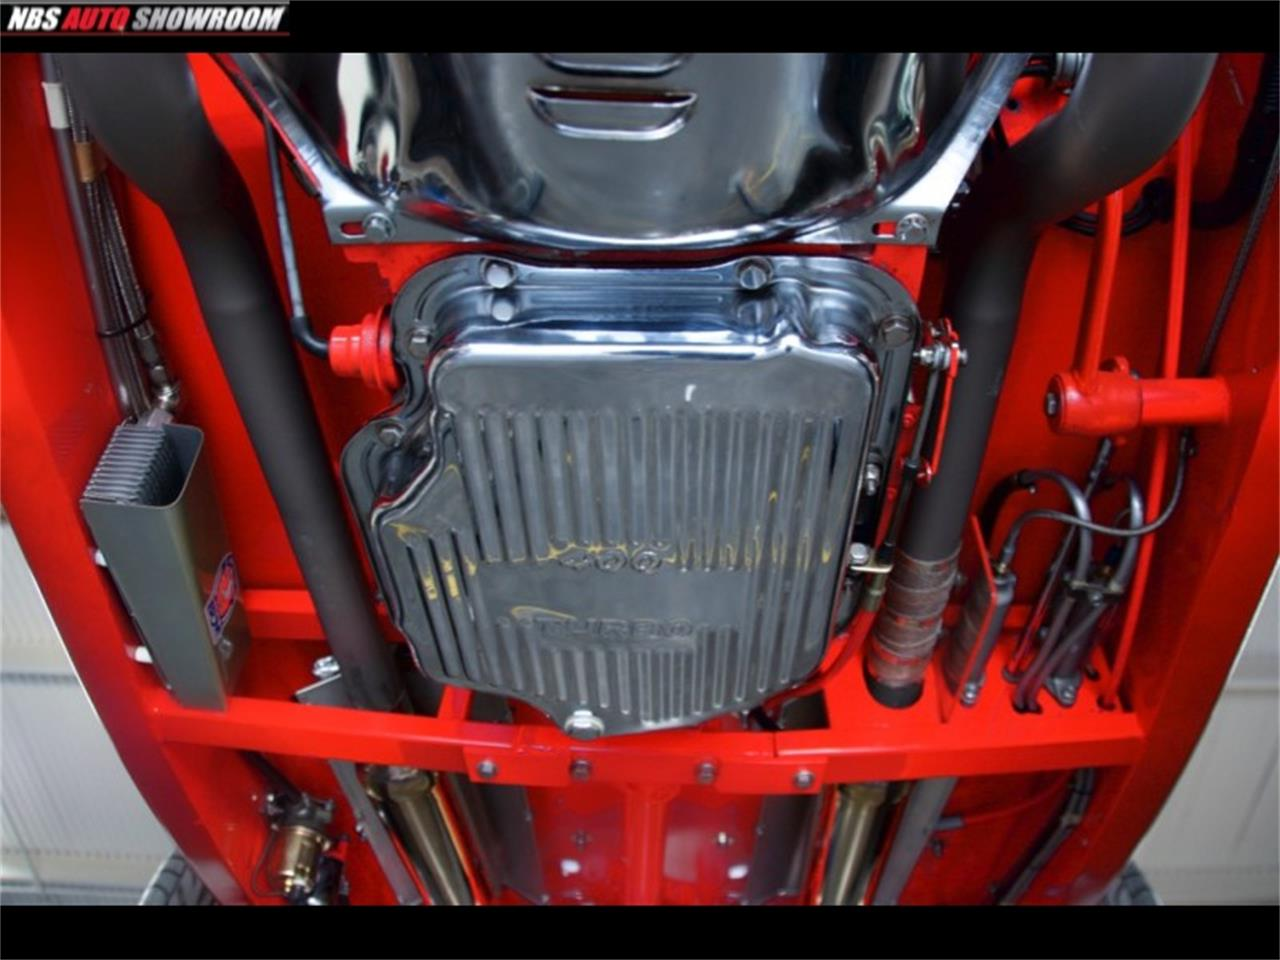 Large Picture of Classic 1932 Ford Roadster - $37,546.00 Offered by NBS Auto Showroom - QY4R